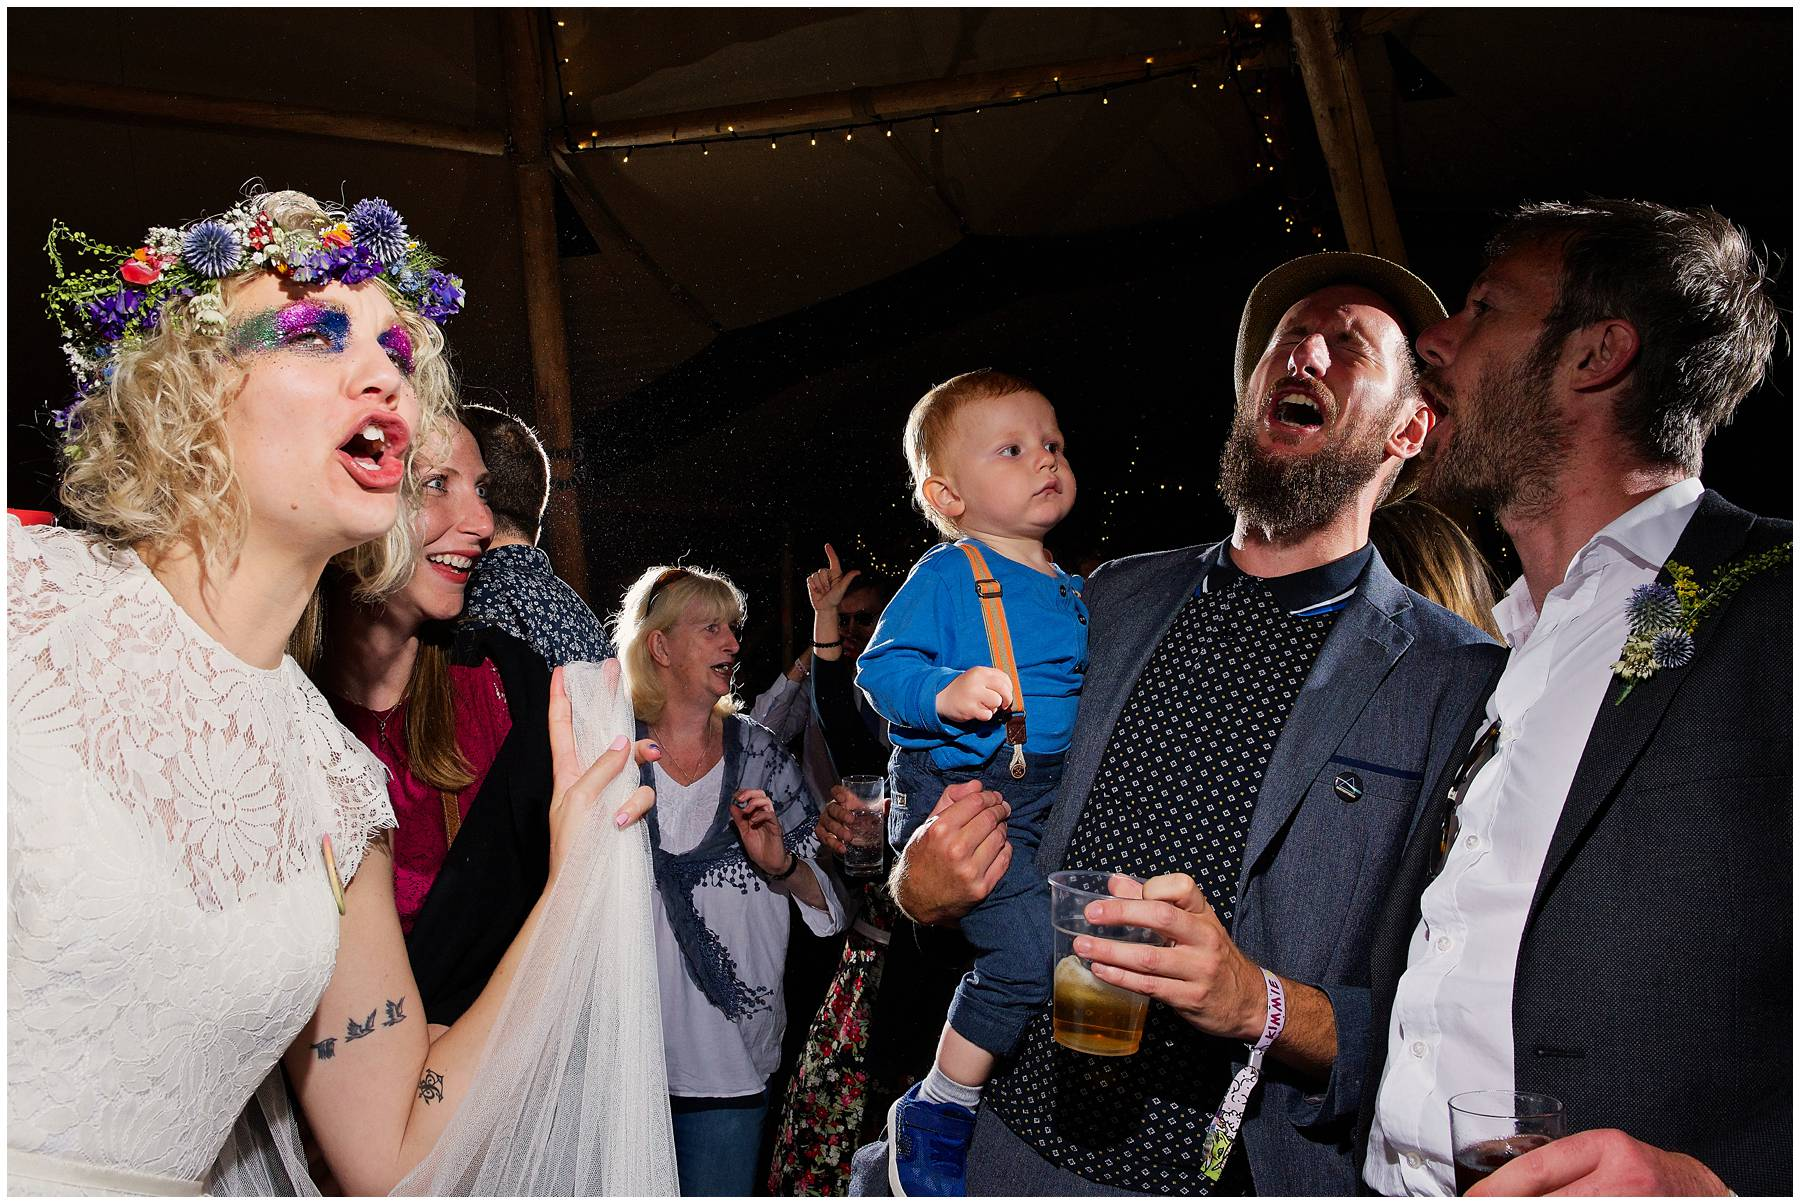 Chas and Dave playing to wedding guests